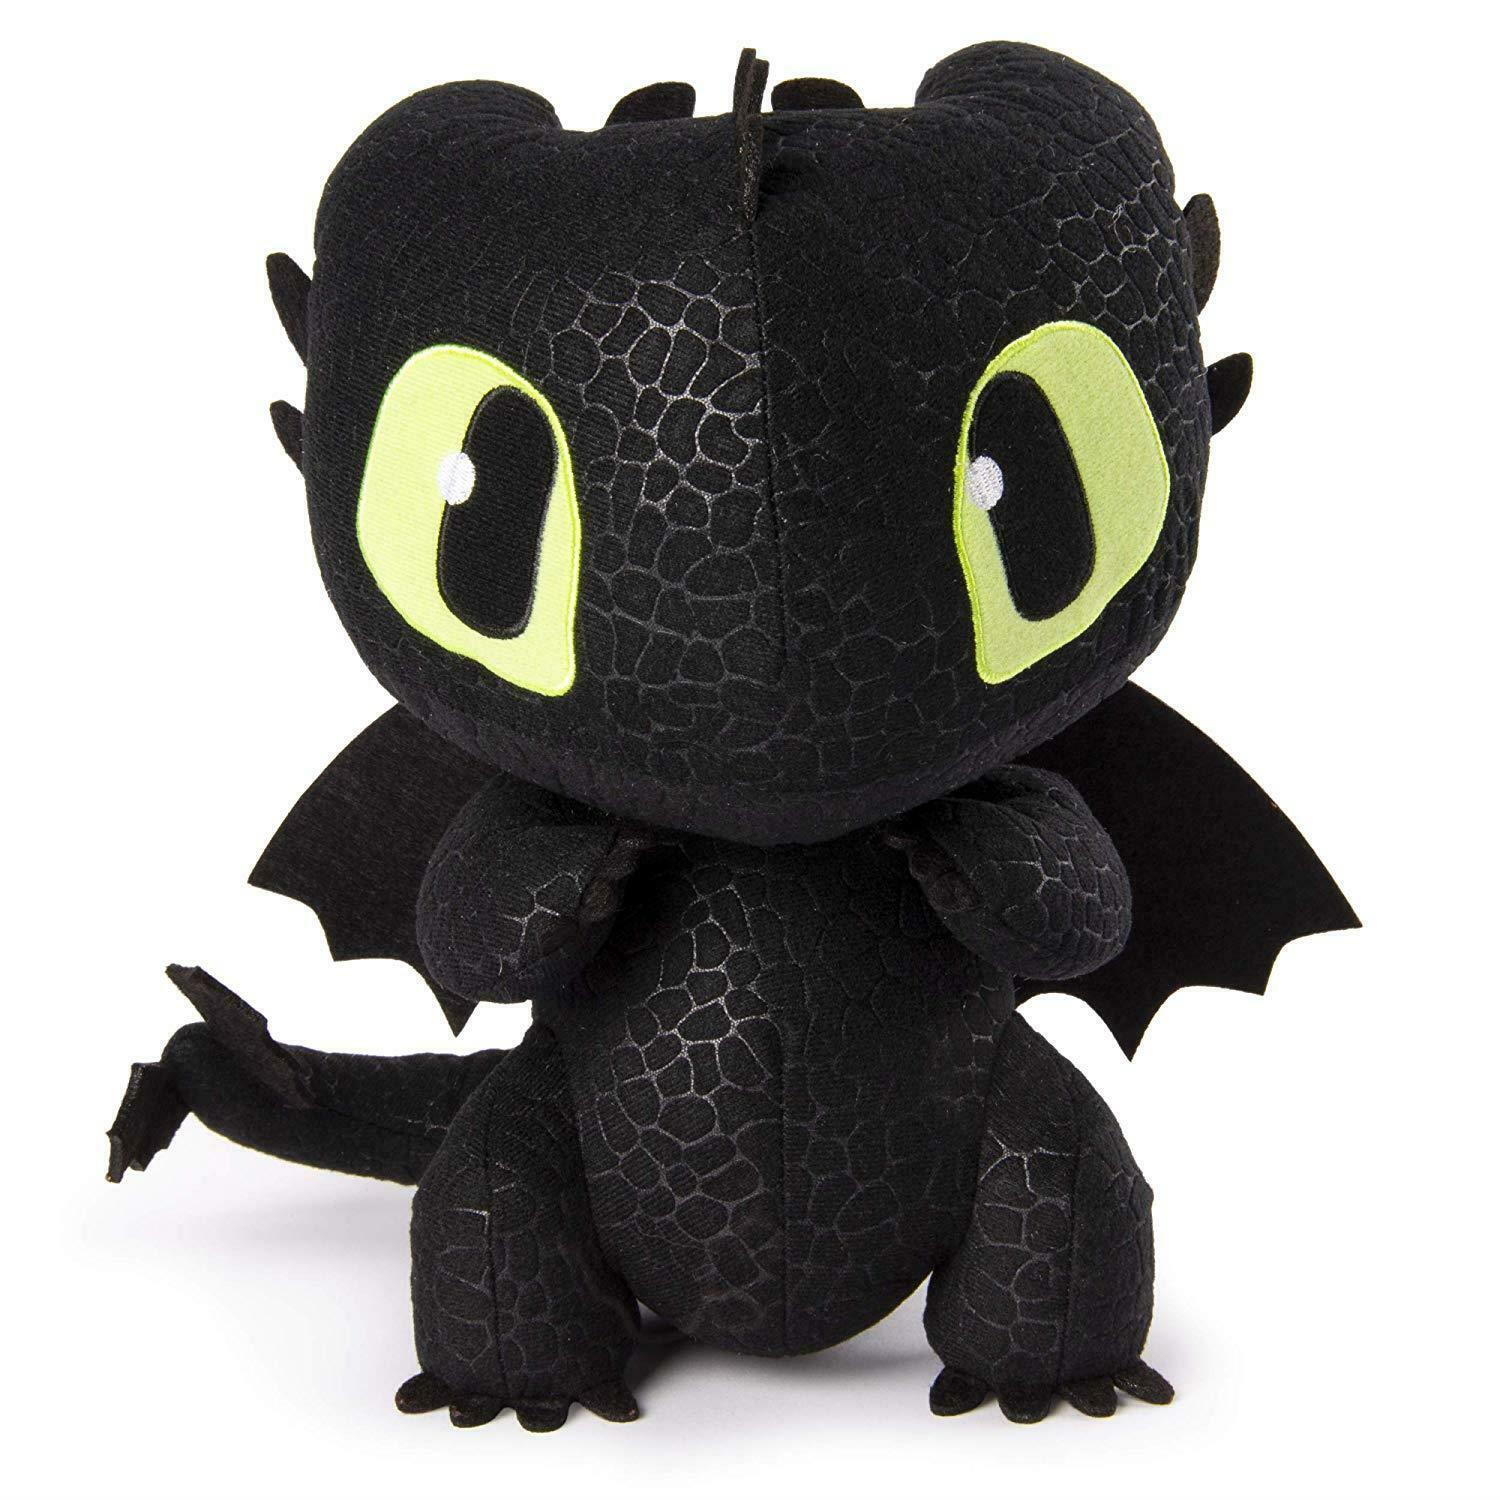 Dragons 6046841 DreamWorks Squeeze and Growl Toothless Plush with Sounds